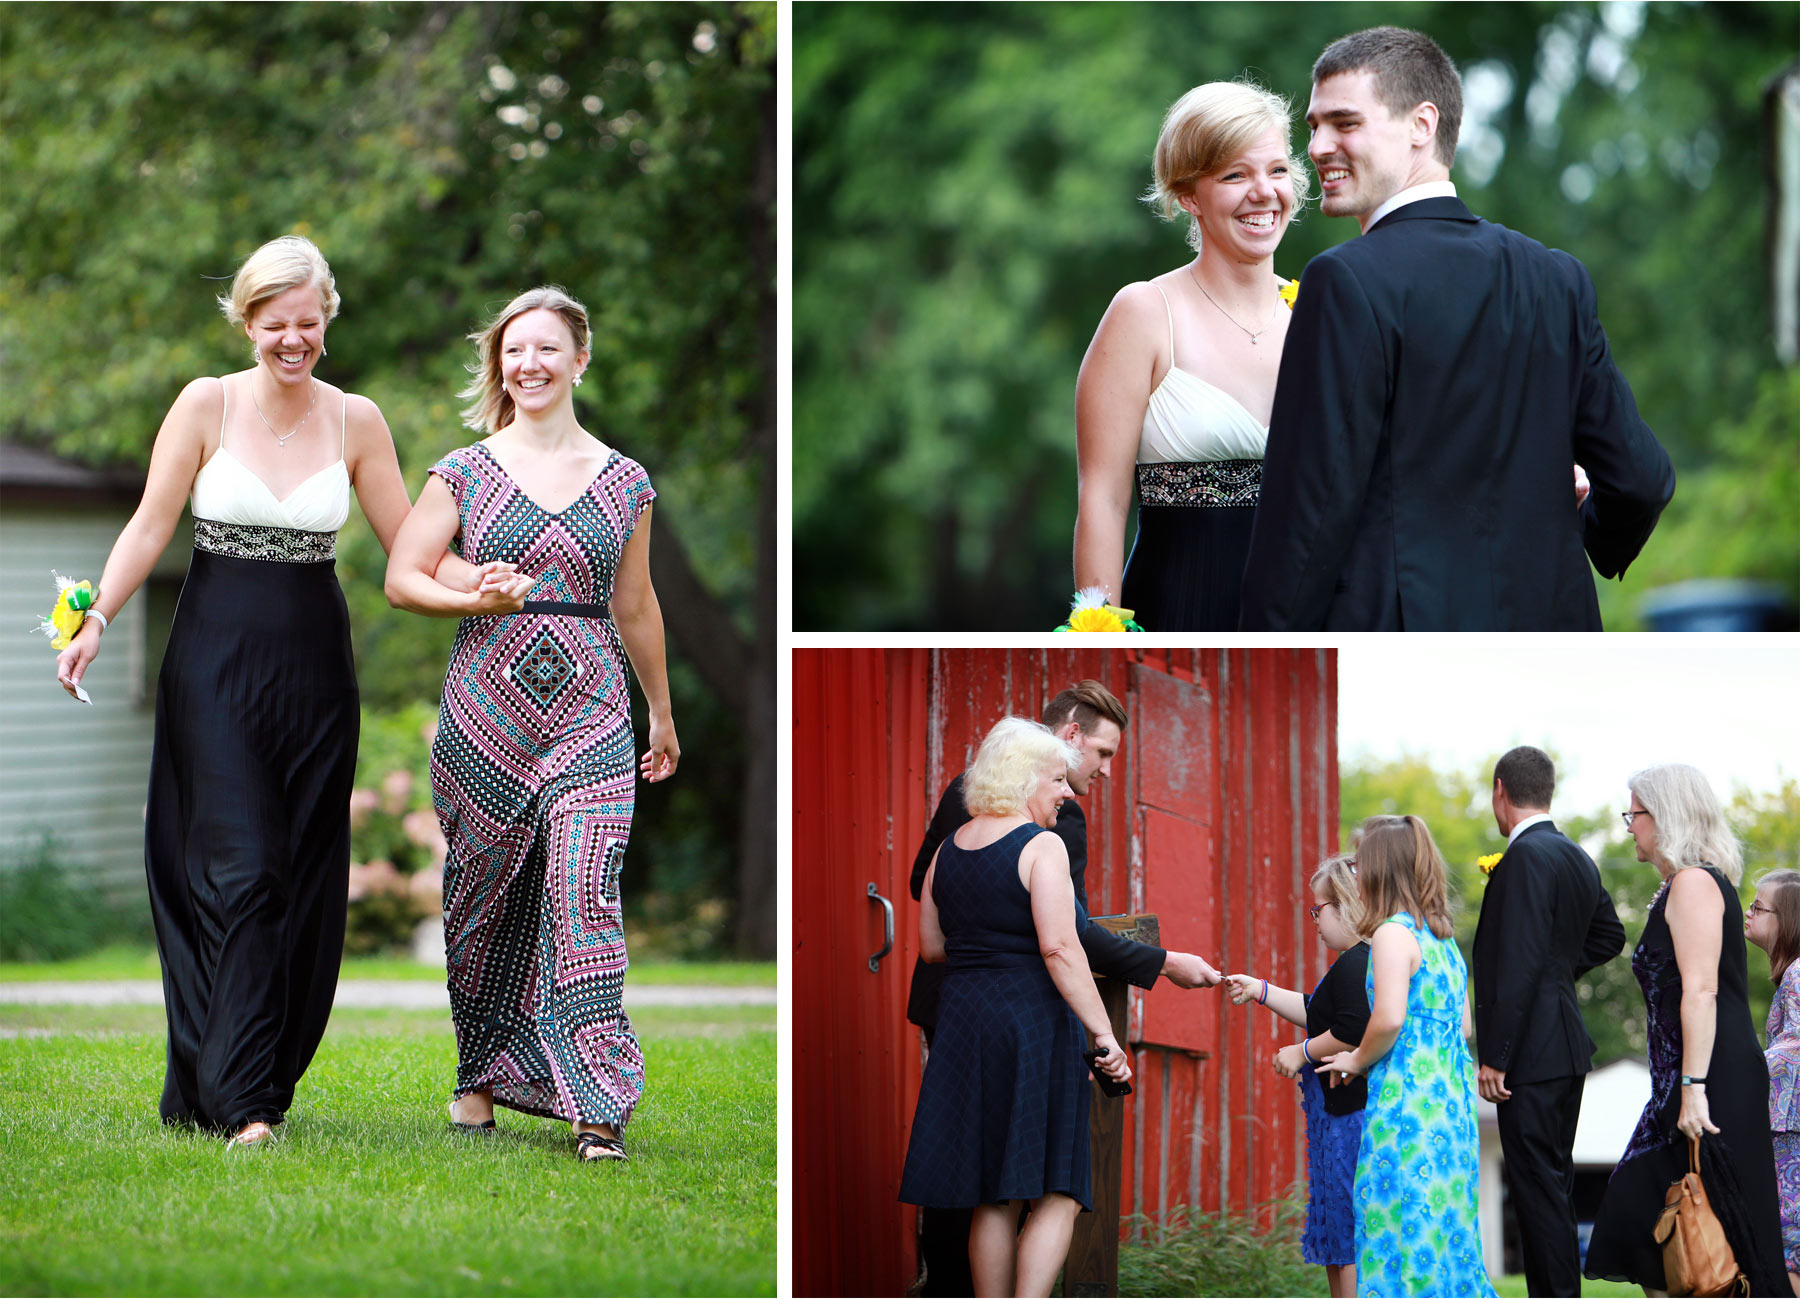 06-Vick-Photography-Proposal-Session-Engagement-Family-Farm-Family-Prom-Dress-Kasie-and-Josh.jpg